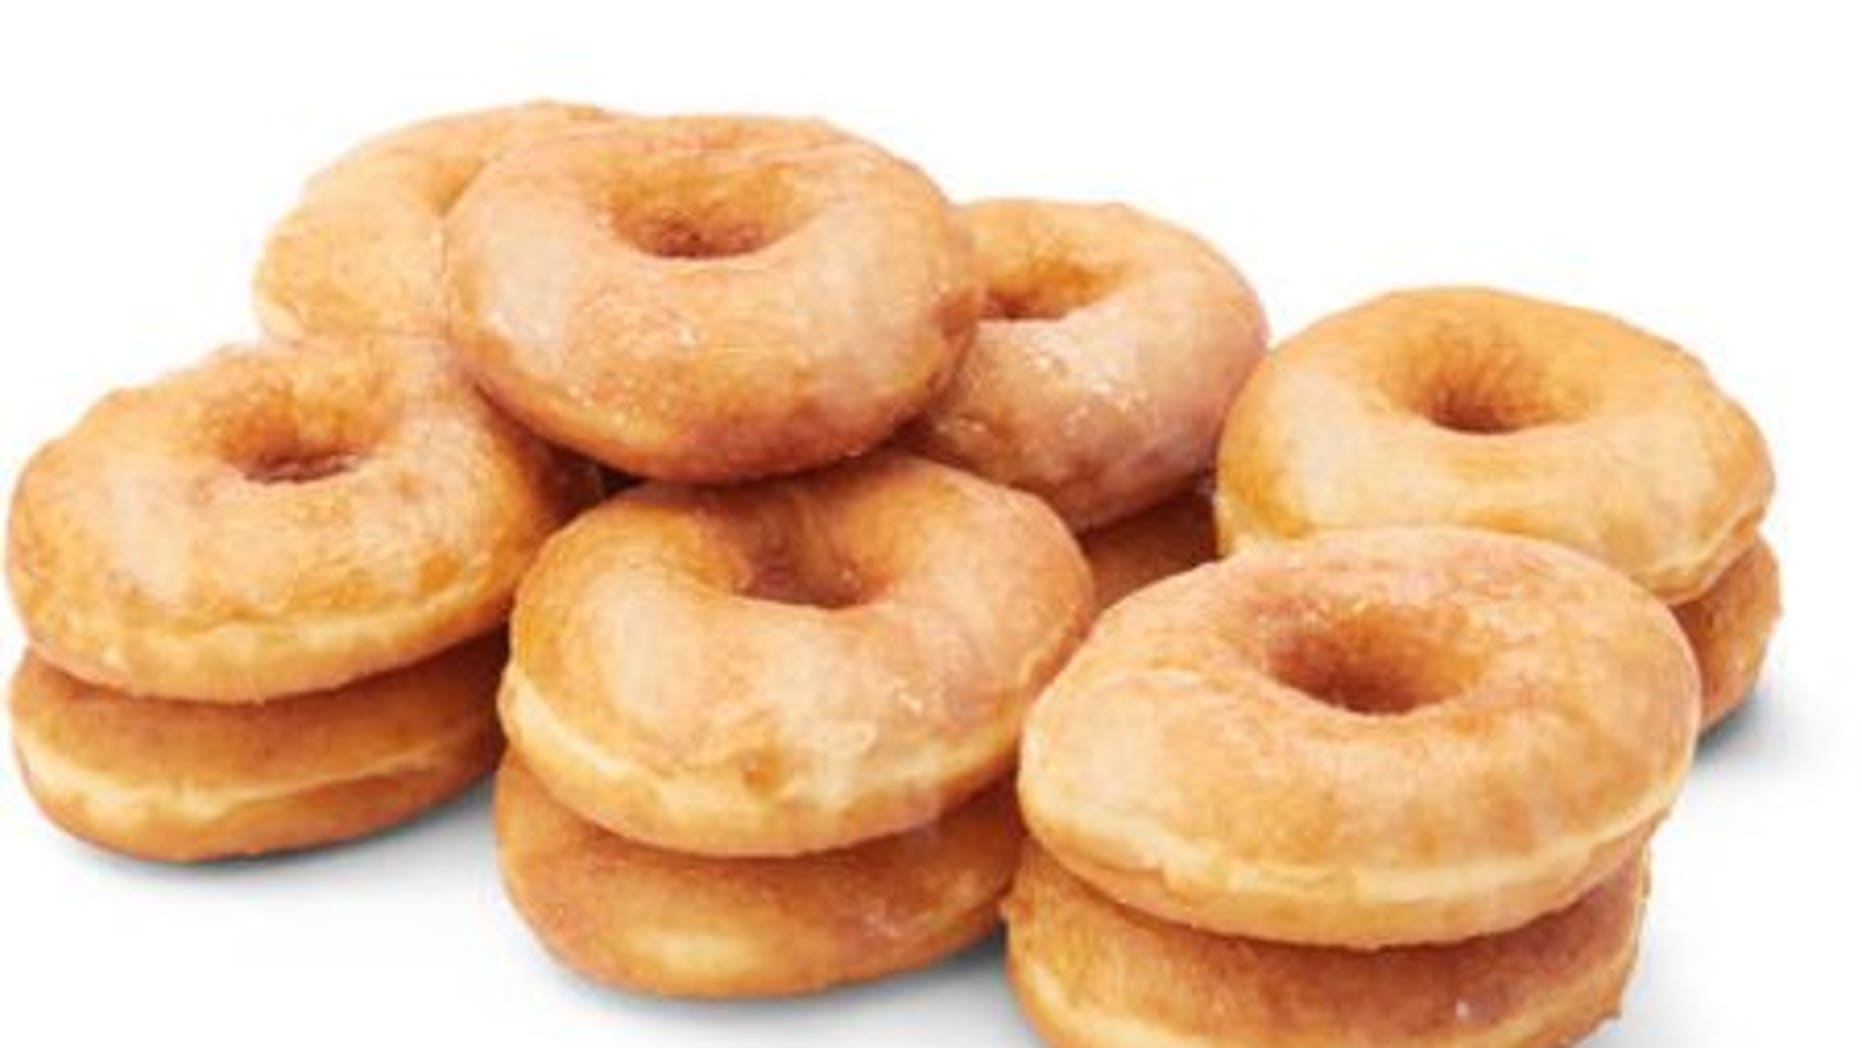 Free doughnuts will be handed out for National Doughnut Day on Friday.